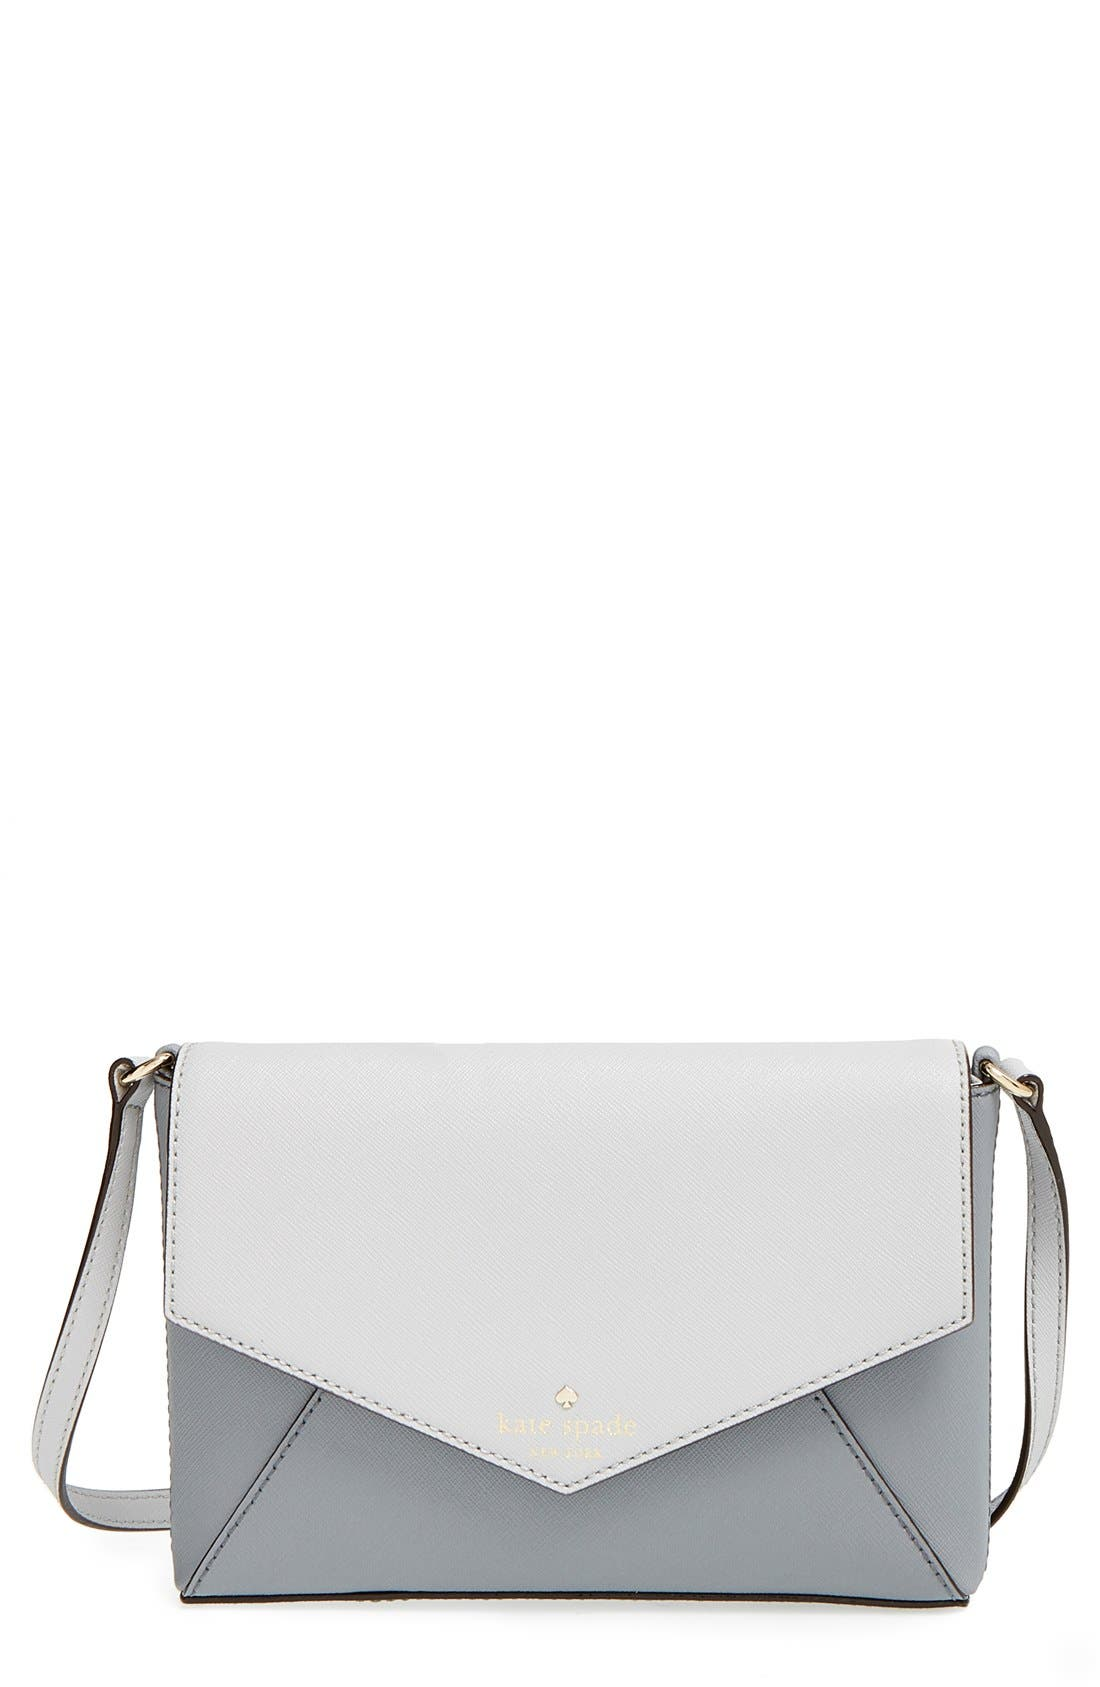 Alternate Image 1 Selected - kate spade new york 'cedar street - large monday' crossbody bag